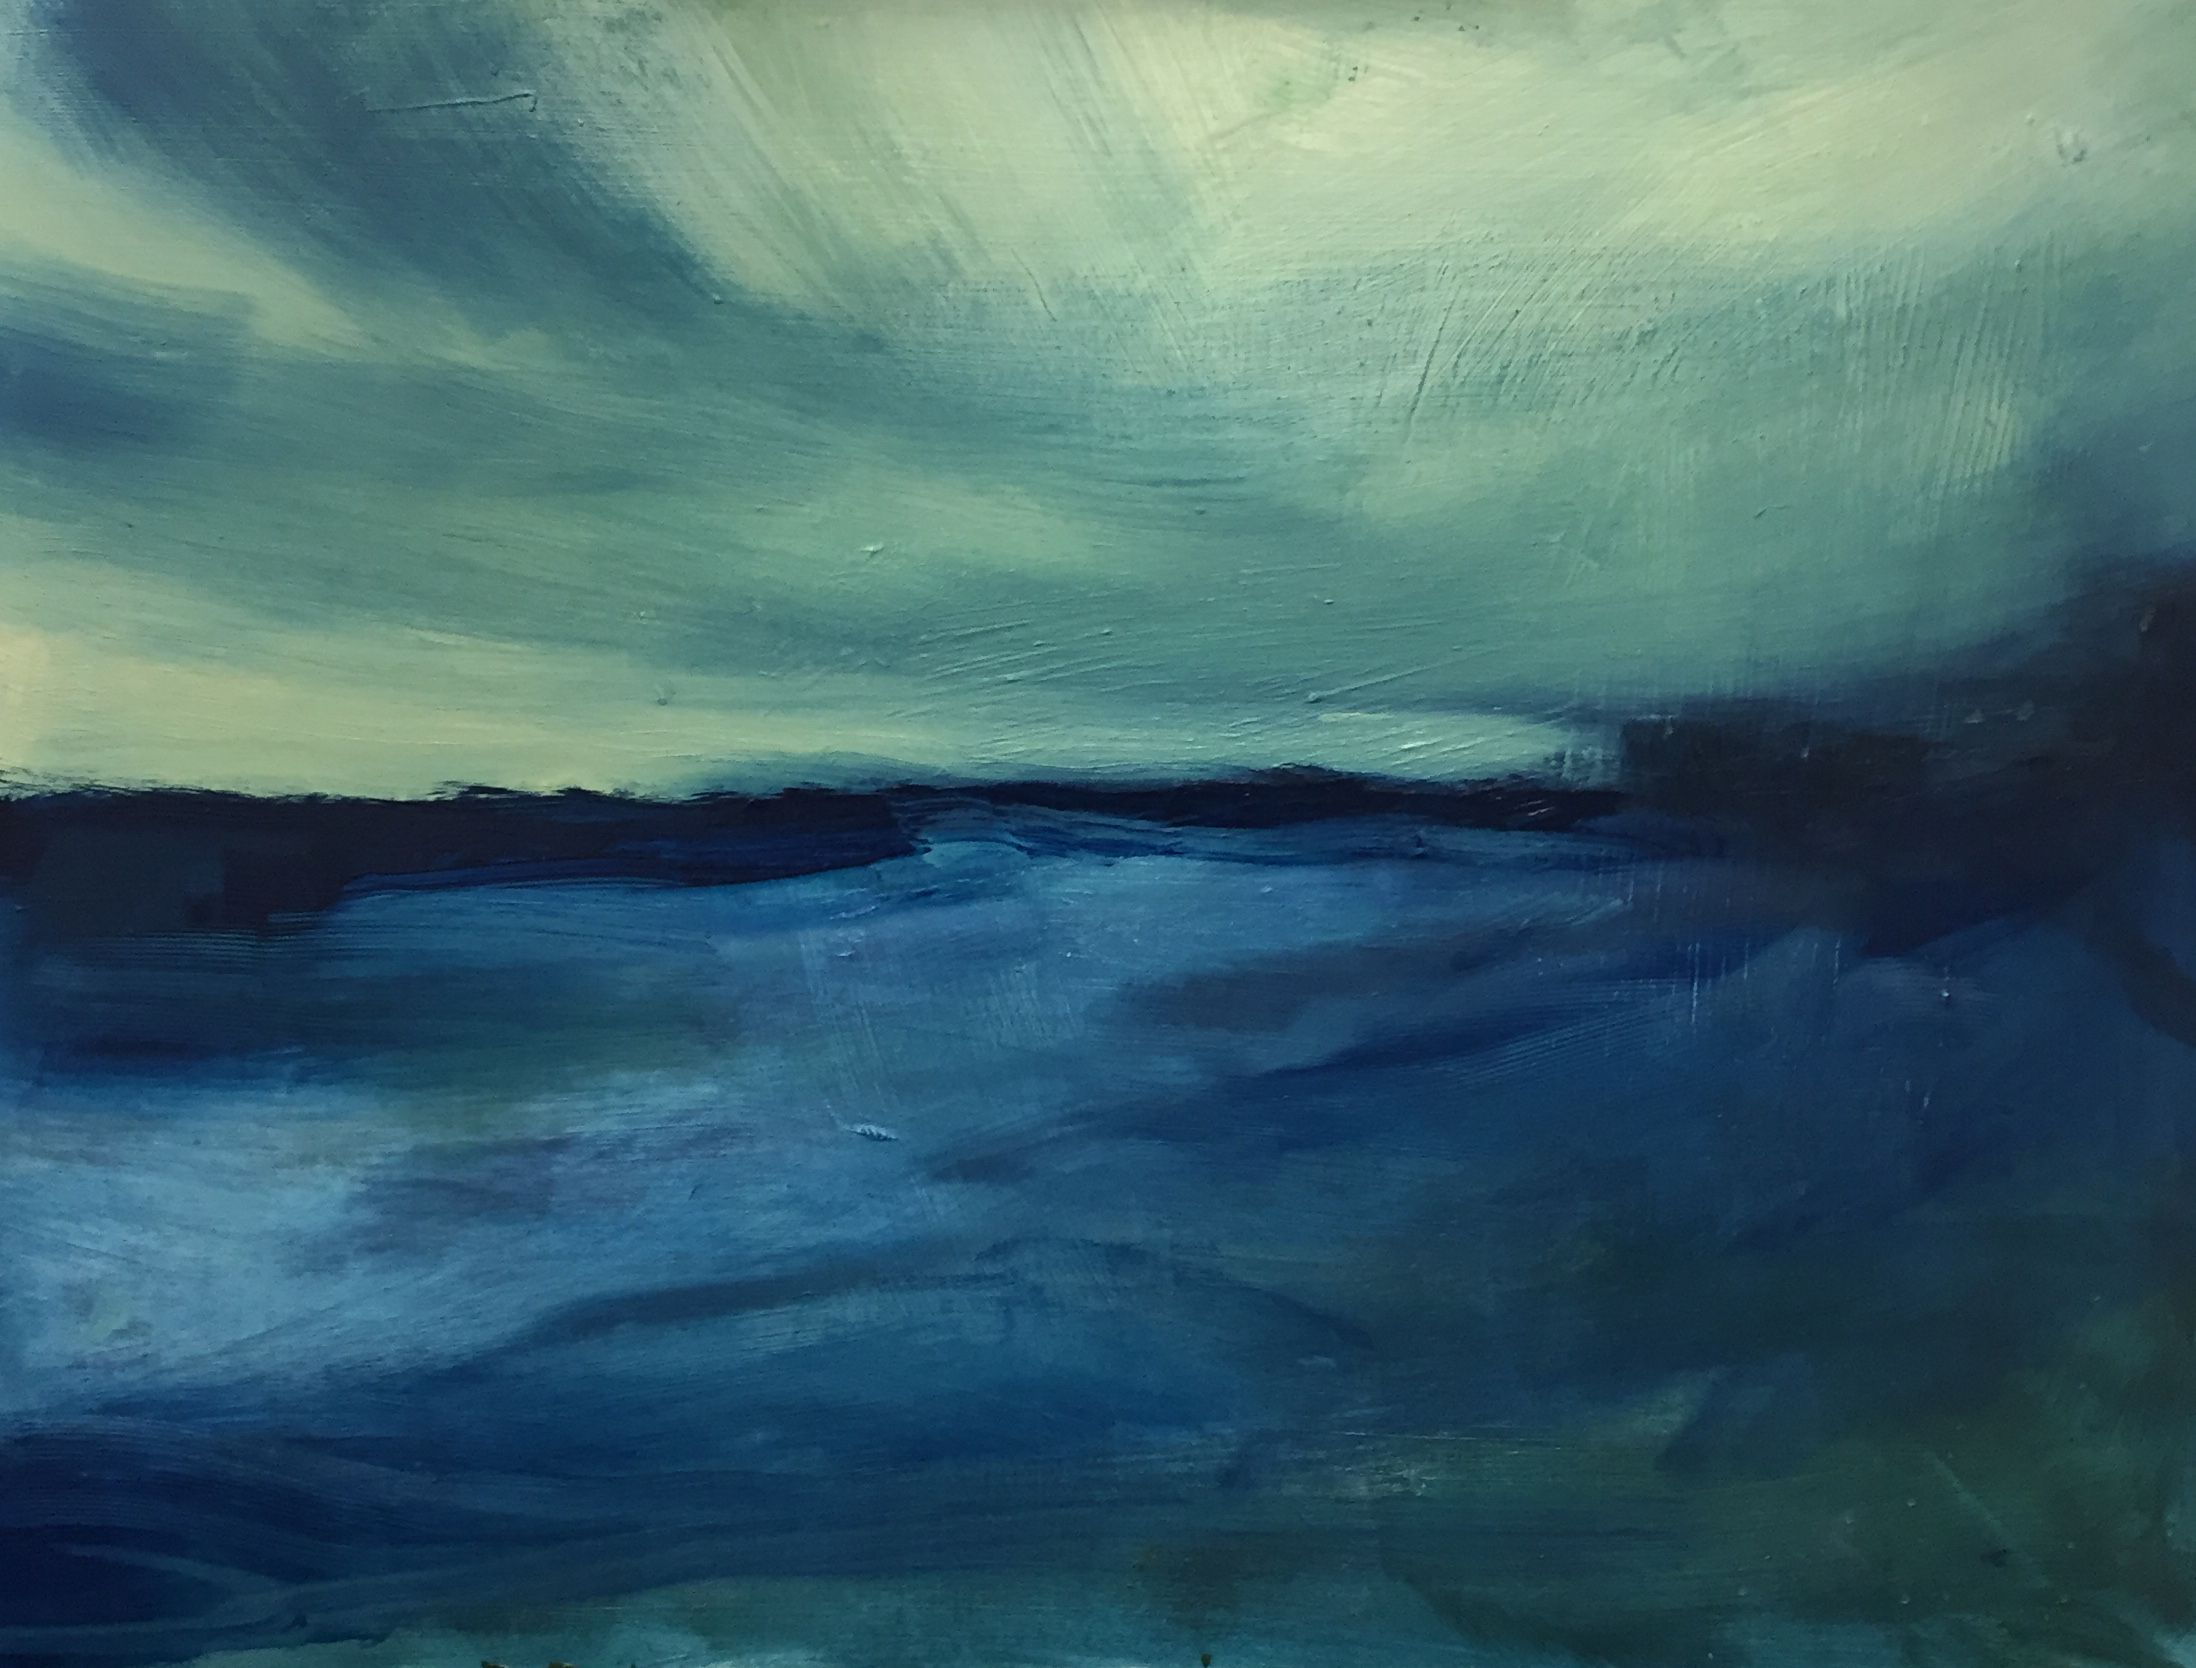 Into the Blue by Lily Rigby